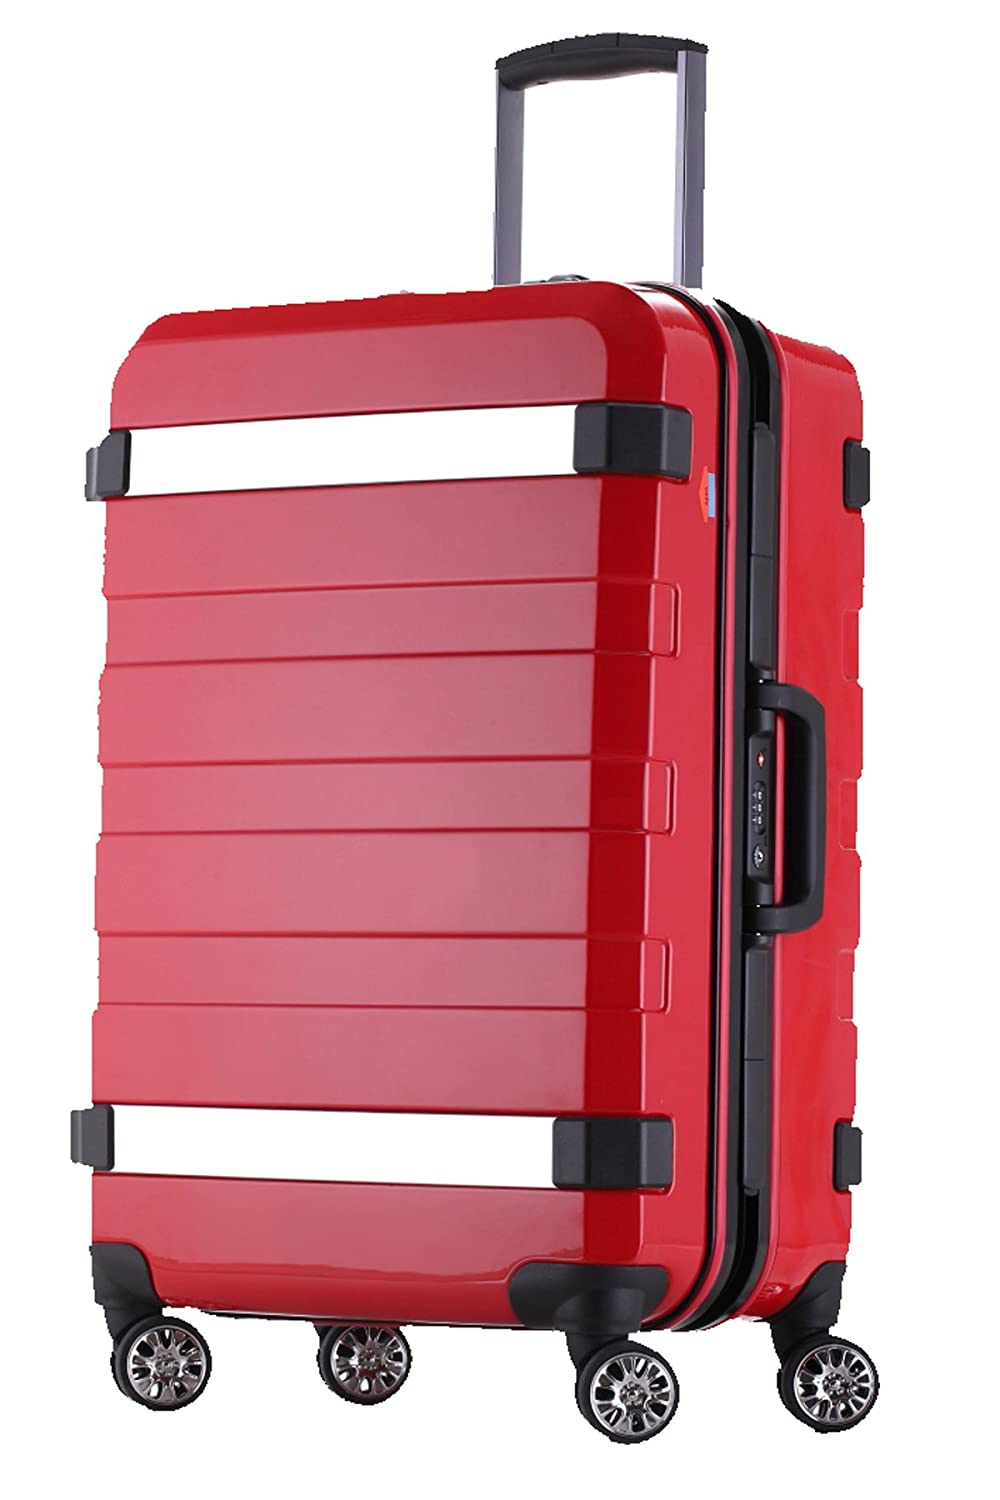 081c70e09cd Ambassador Luggage 25 inch Medium Trip Suitcase Spinner Travel Red ...